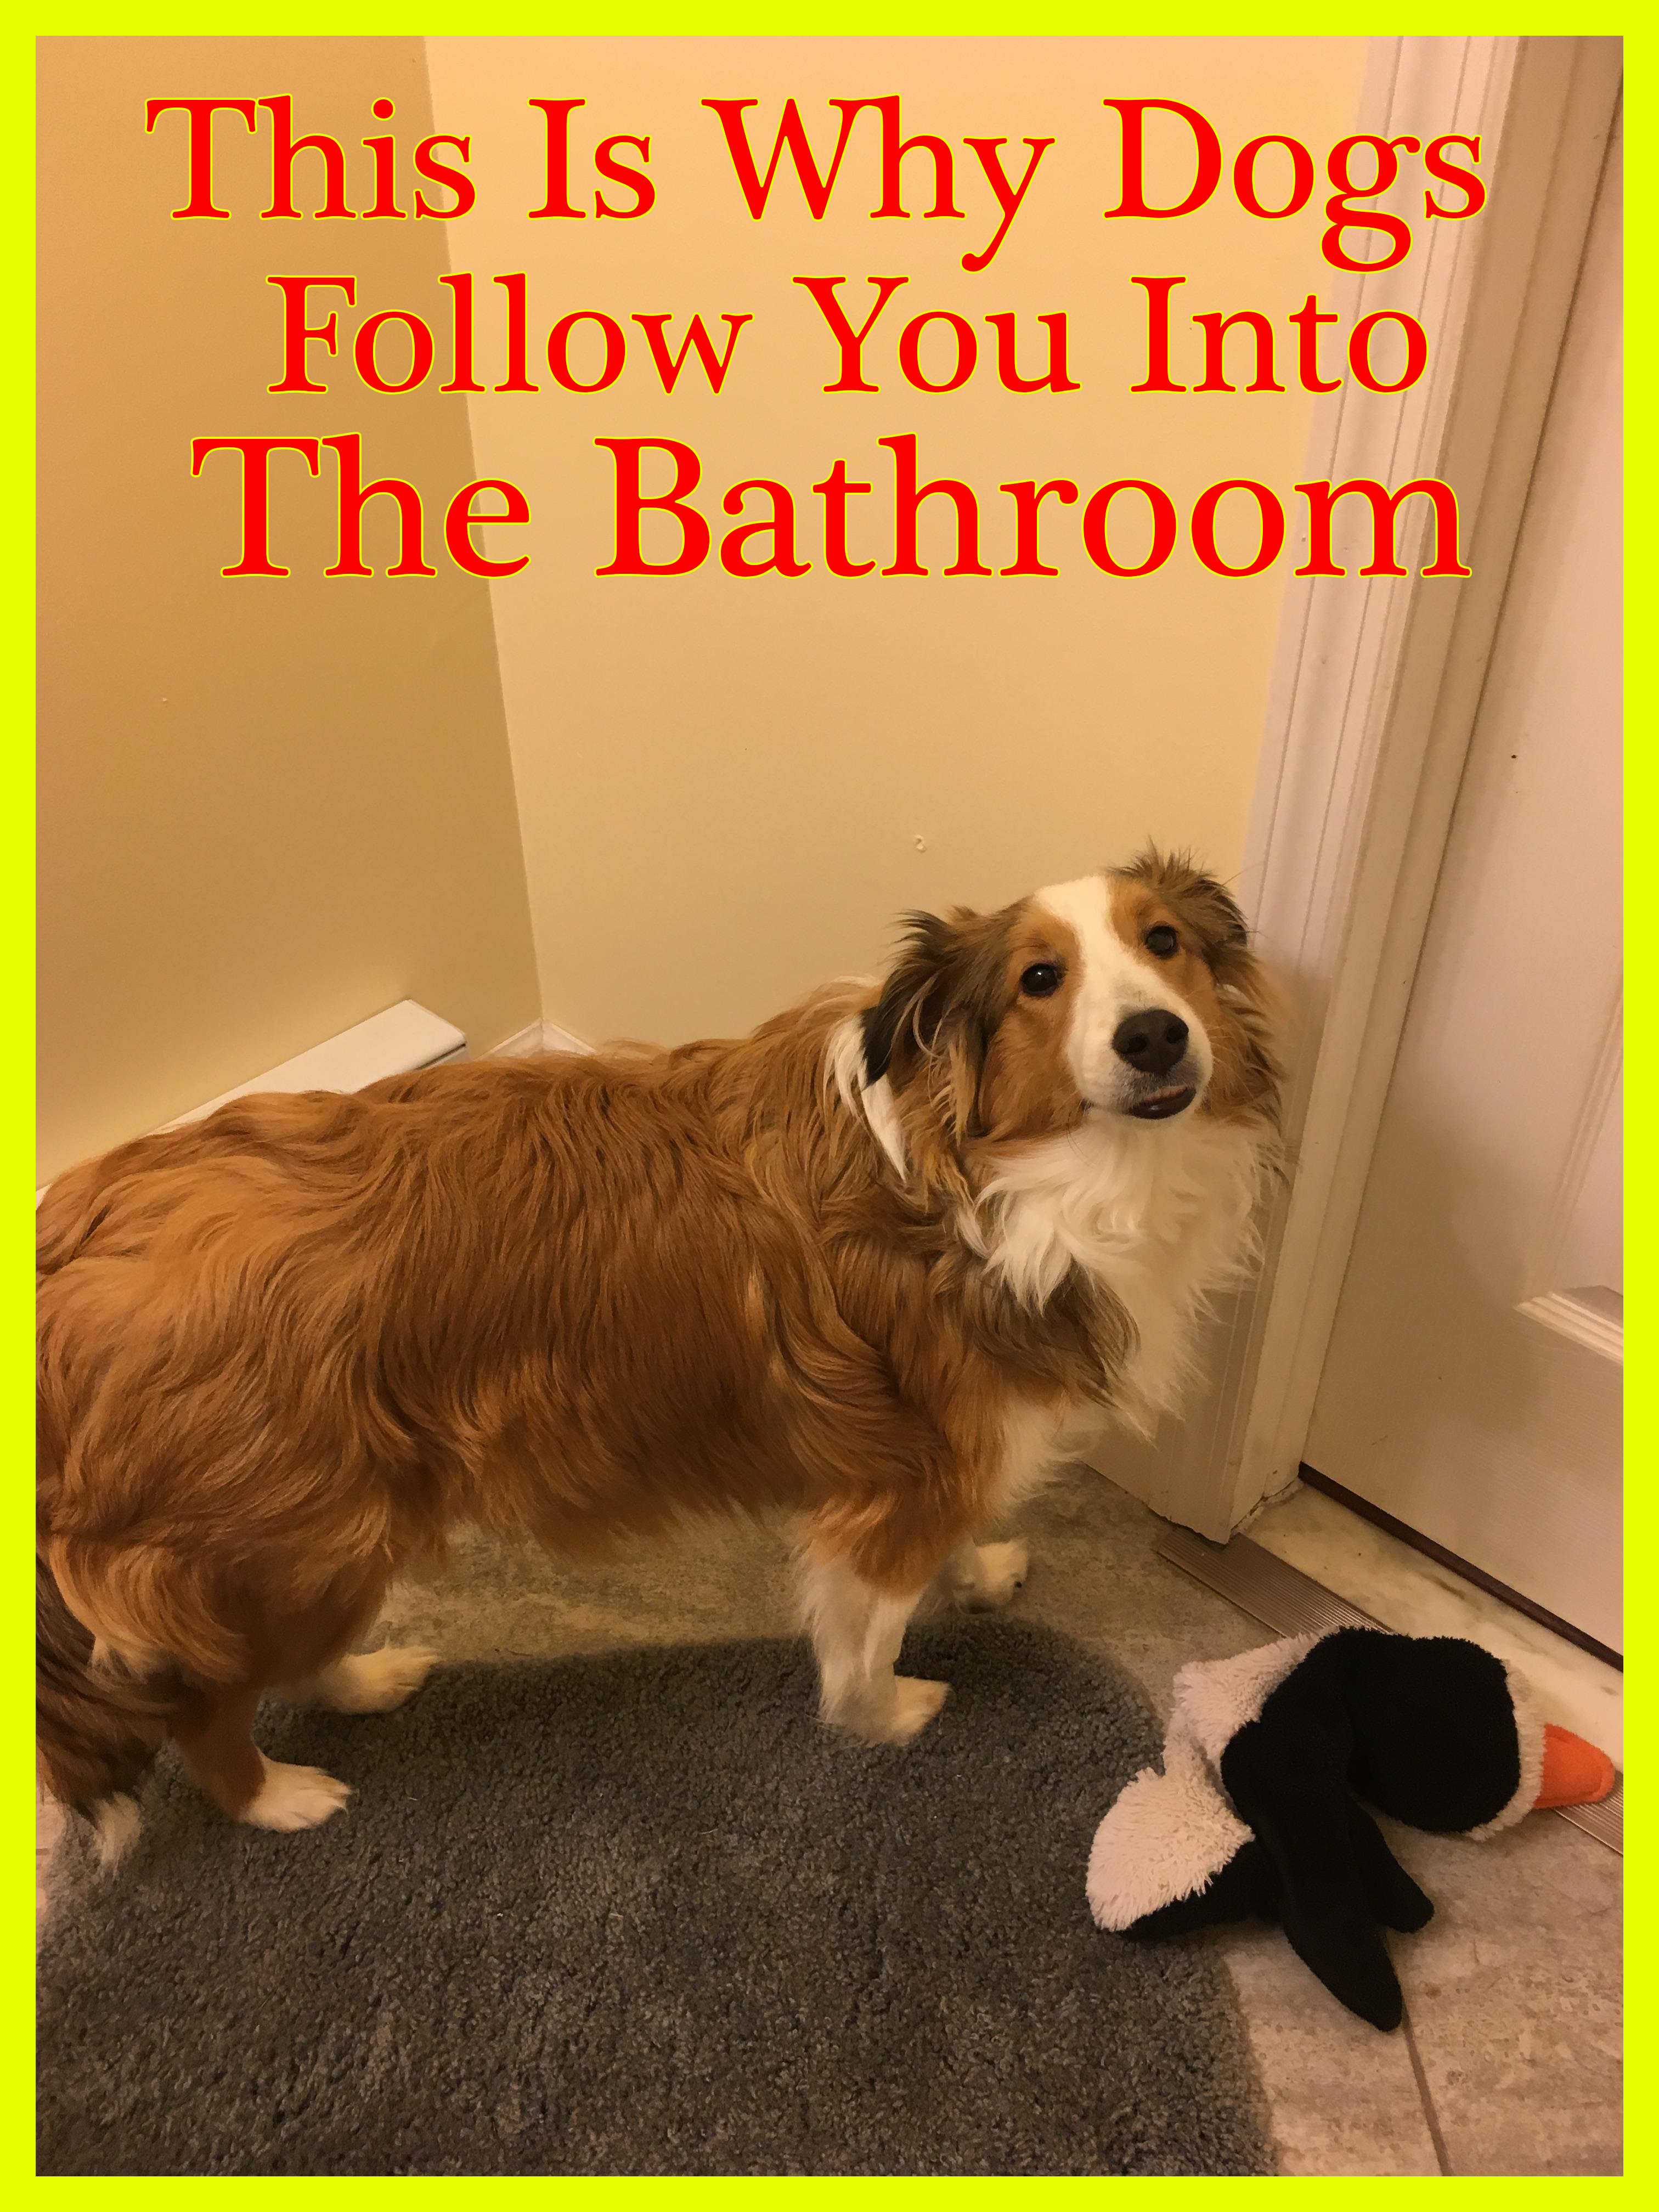 Why Do Dogs Follow You Into The Bathroom